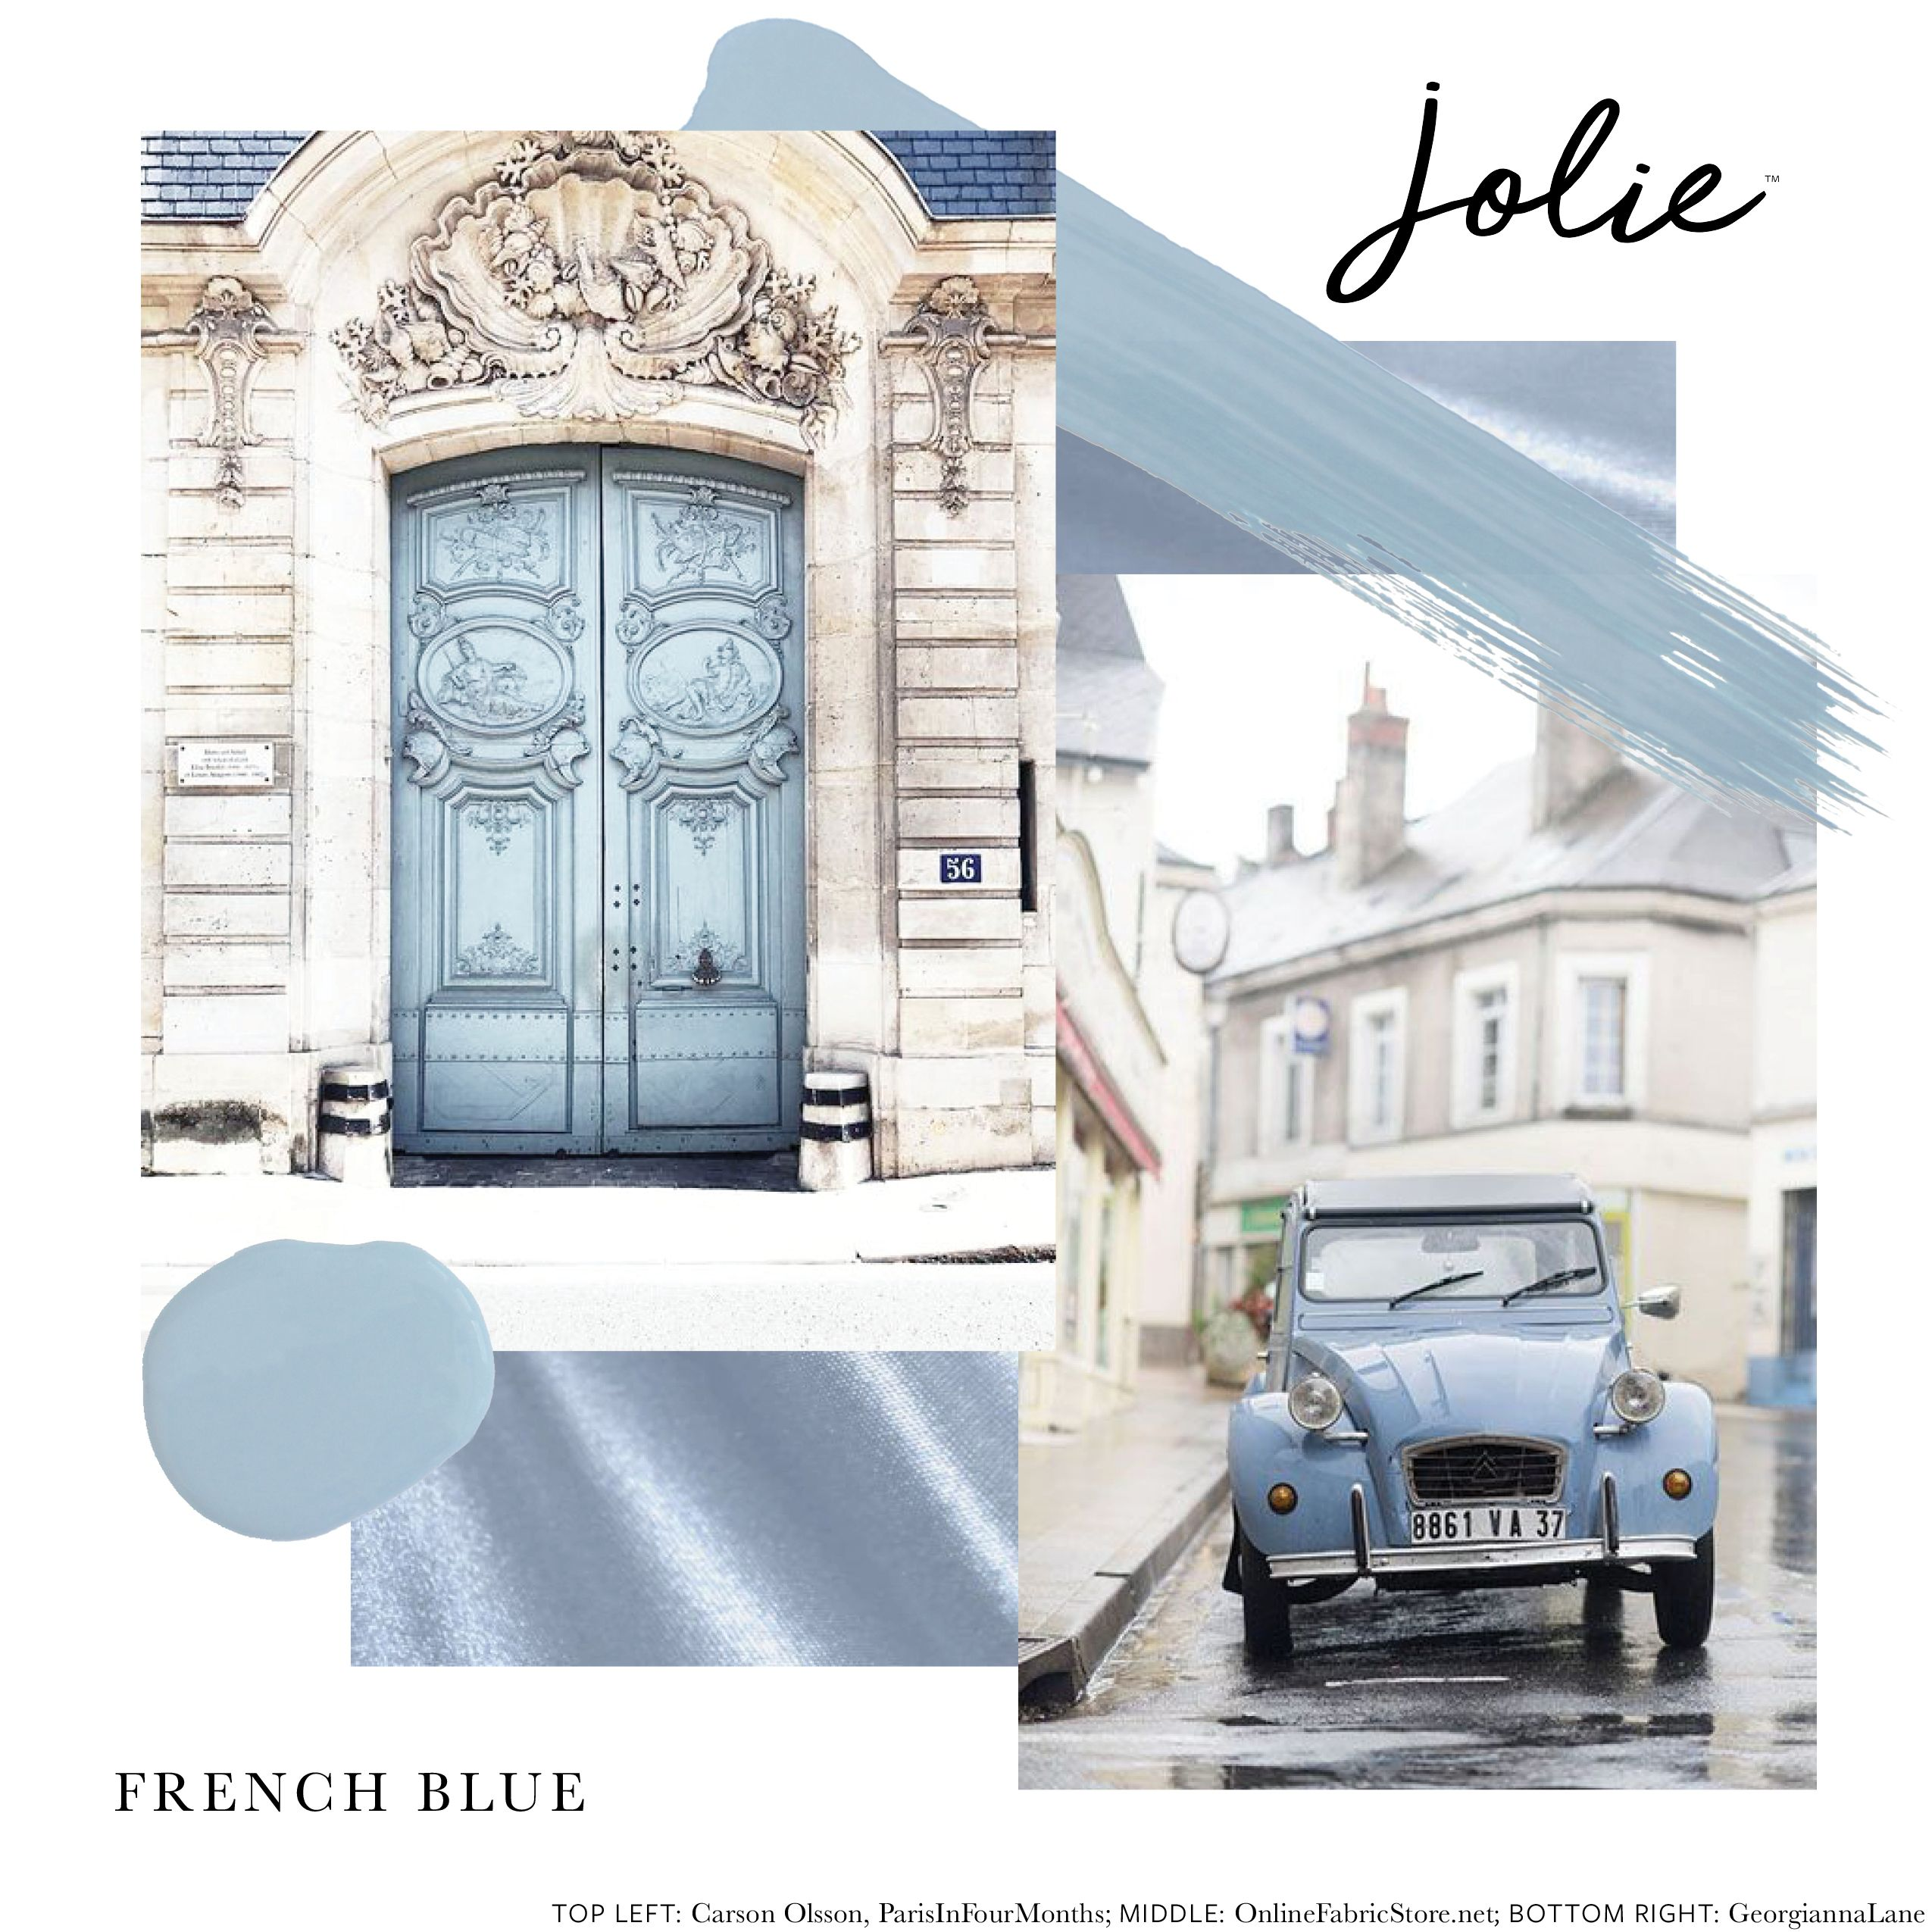 French Blue Jolie Paint In 2019 Dark Paint Colors